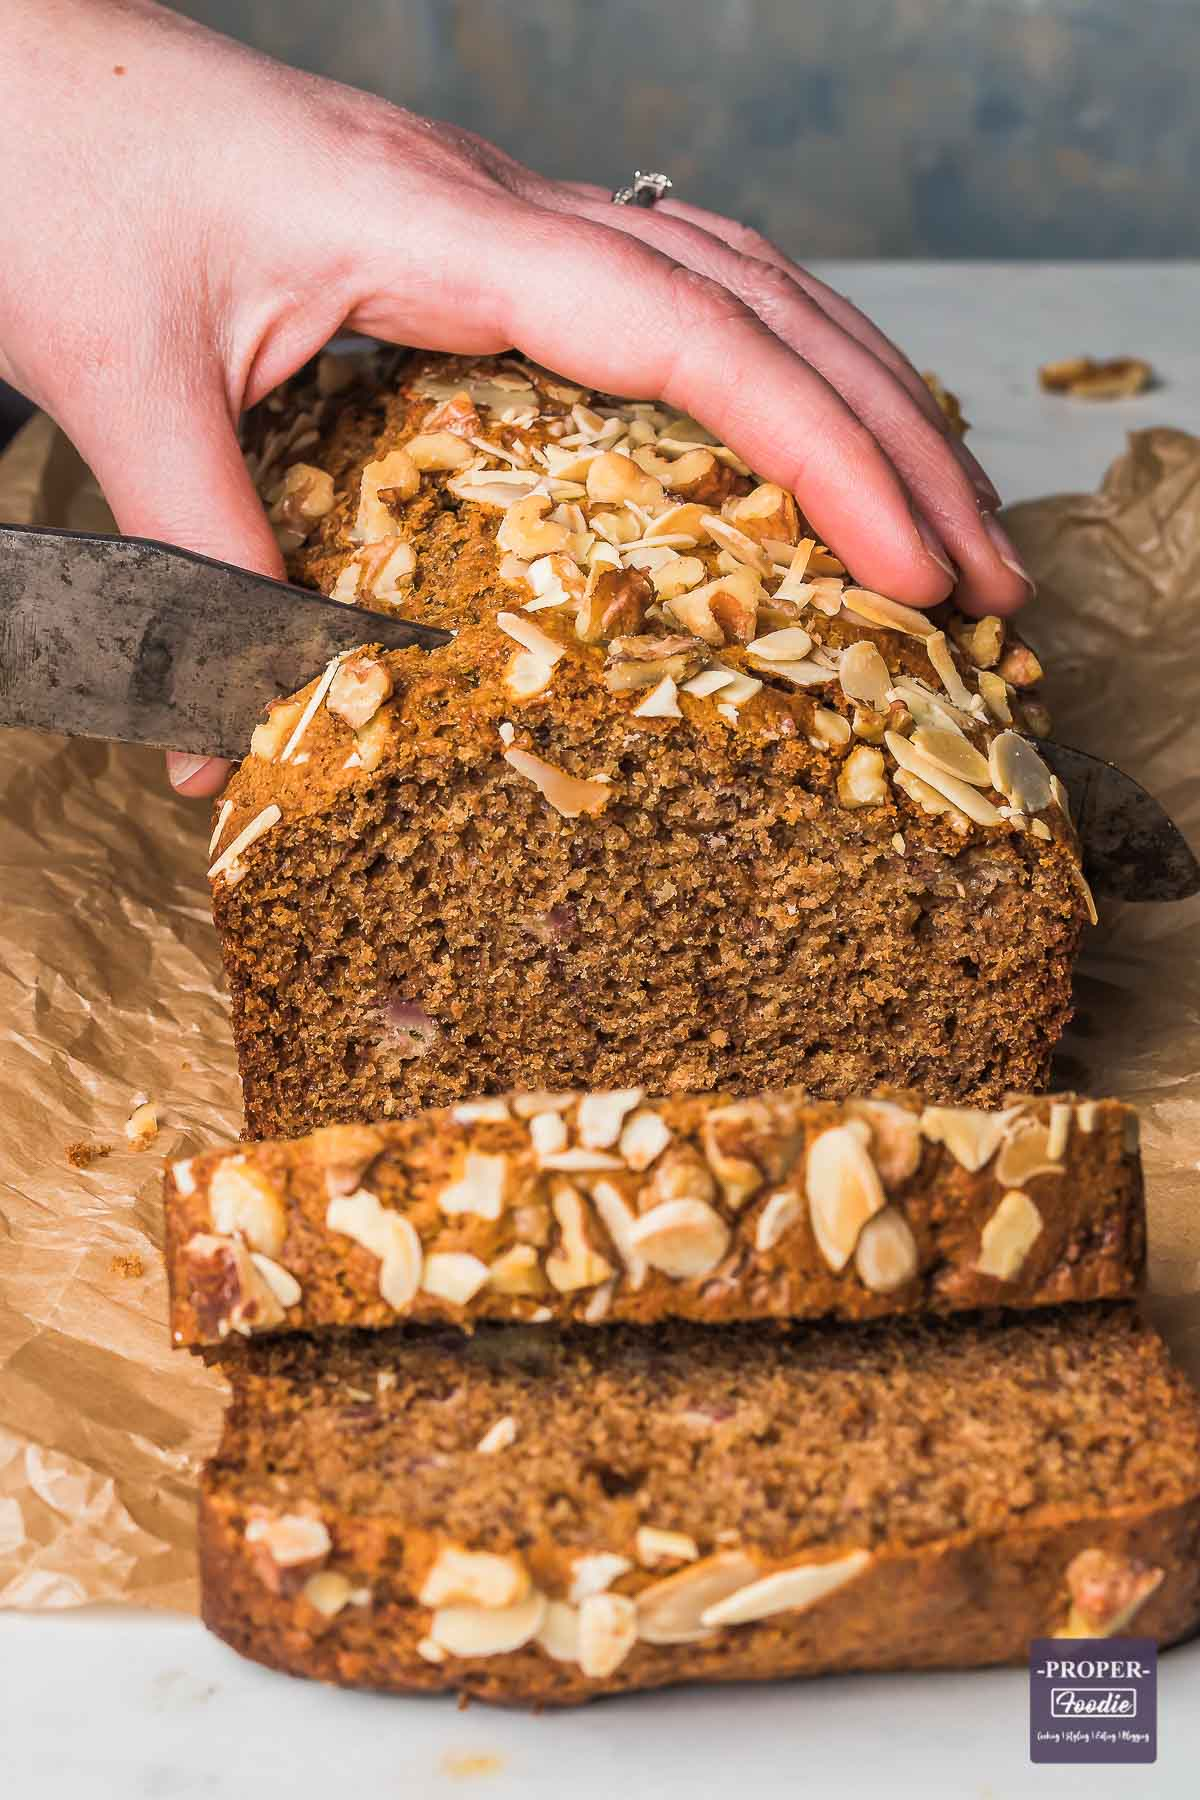 Loaf of healthy banana bread being sliced in to.